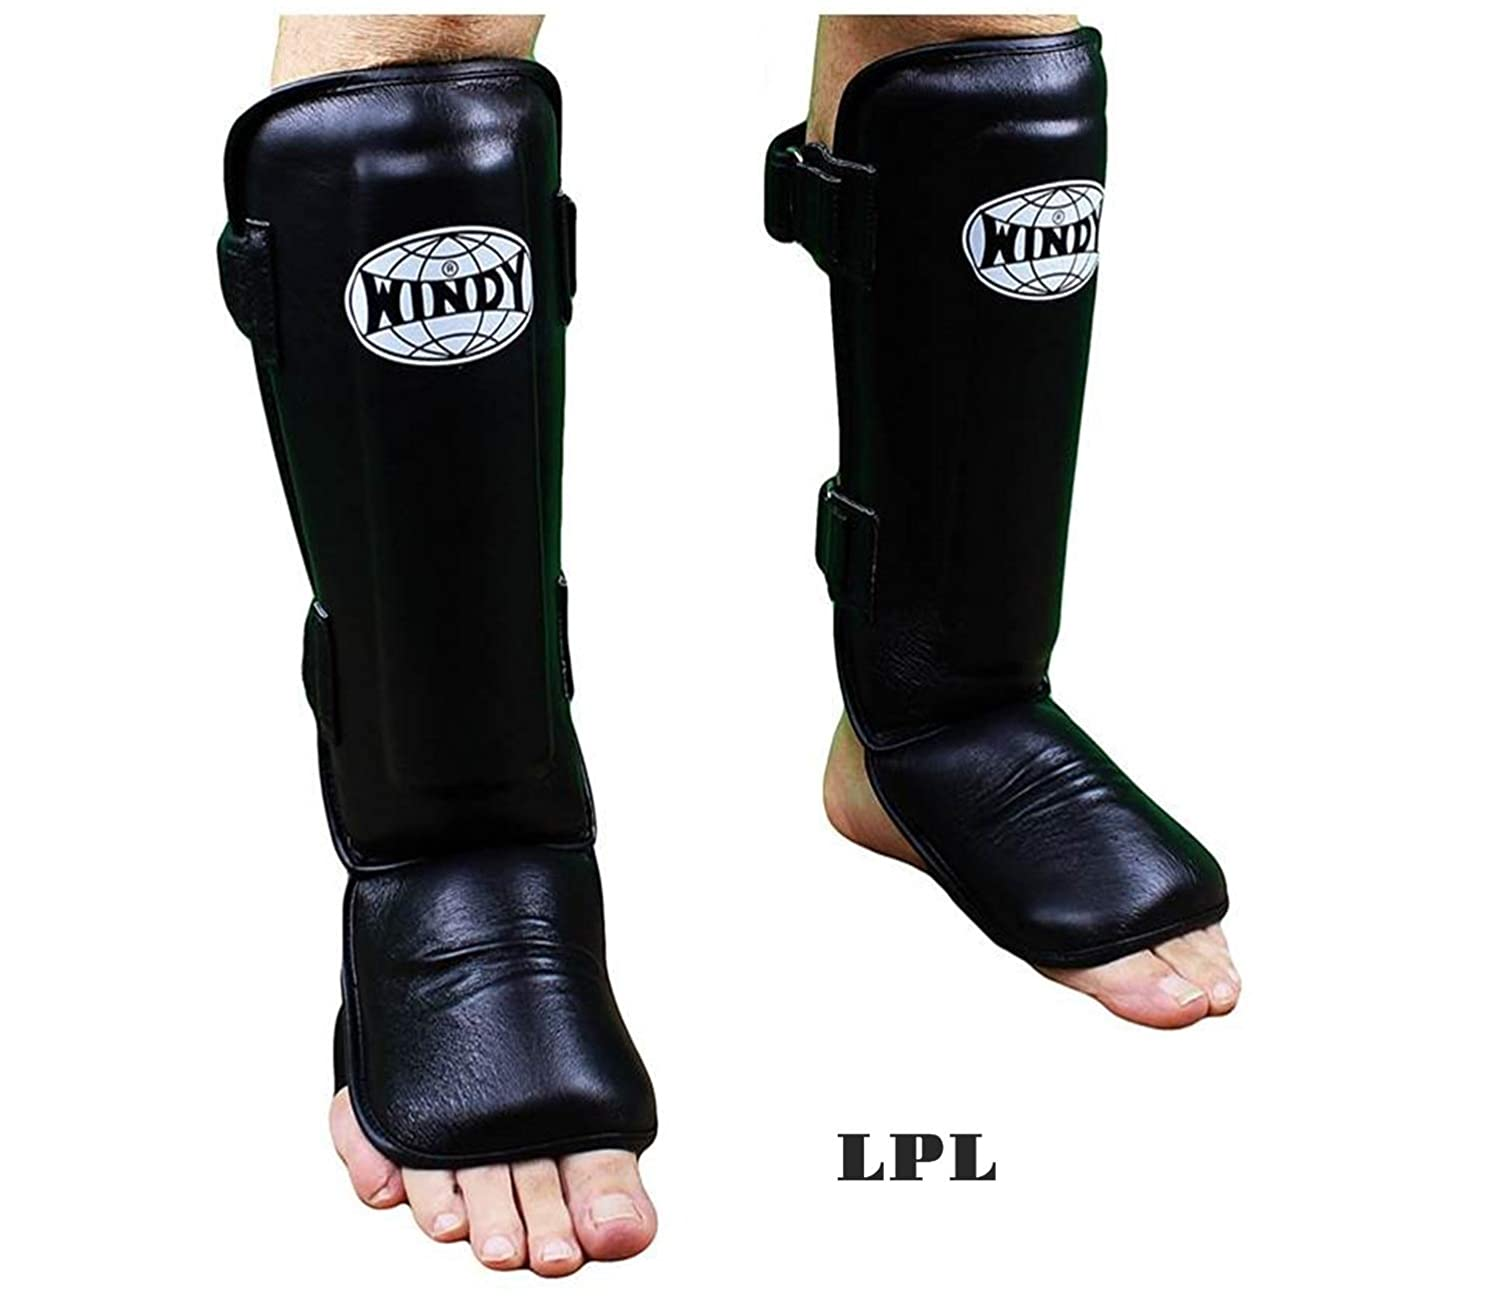 Windy Extended Muay Thai Pads